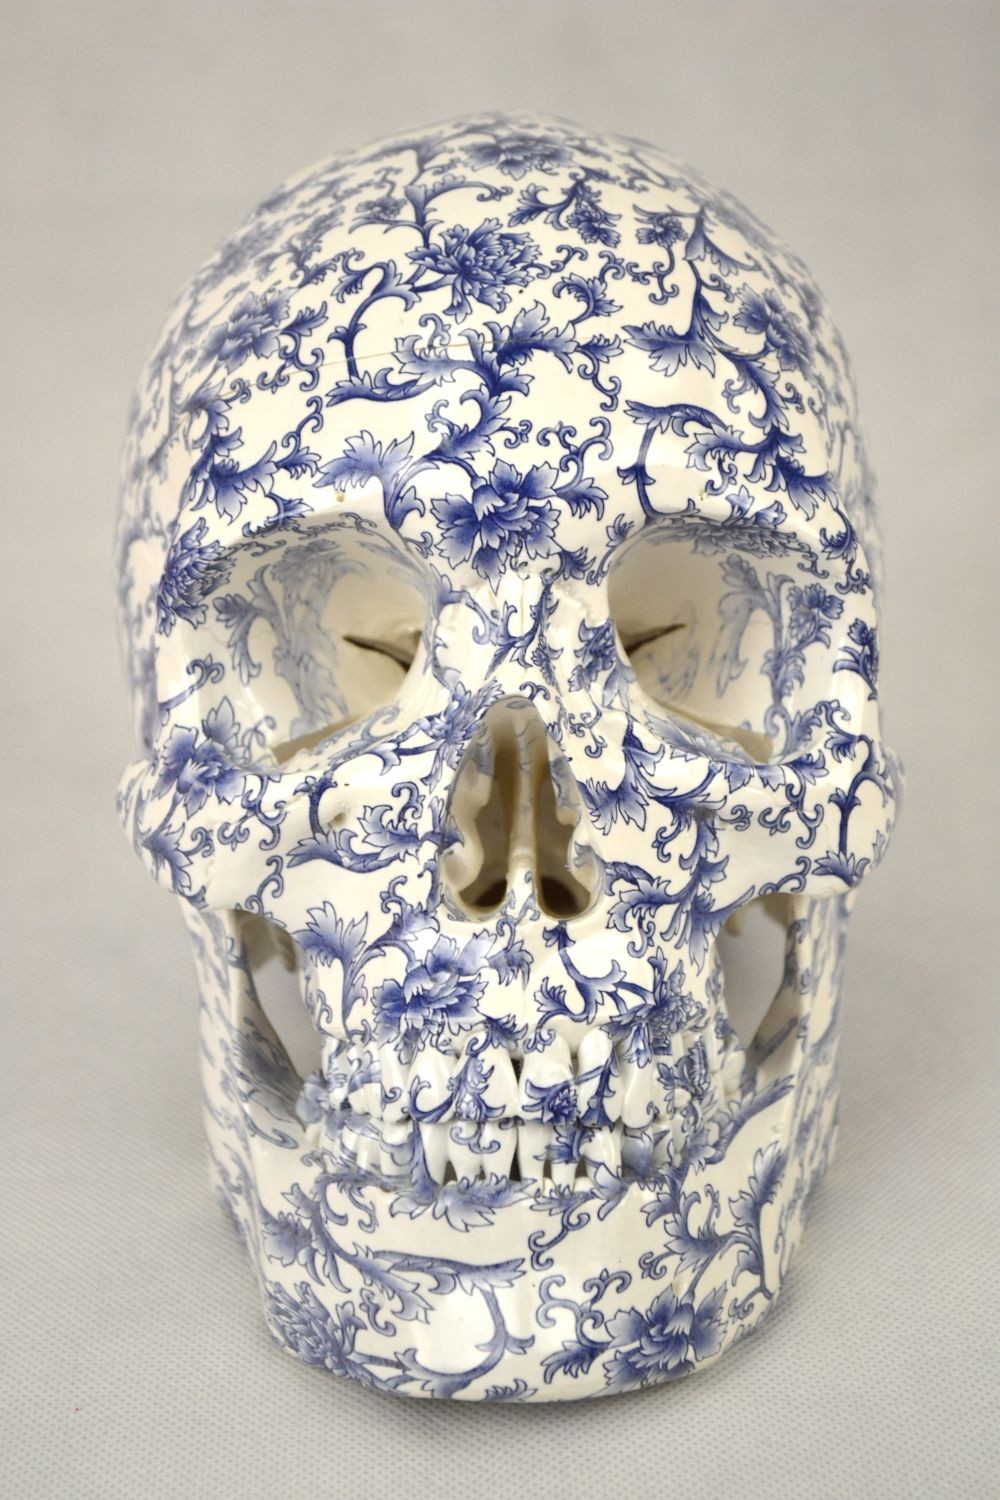 High Degree Emulation 1:1 Human Medical Skull Art Replica, 2-part, Life Size Art Pattern China